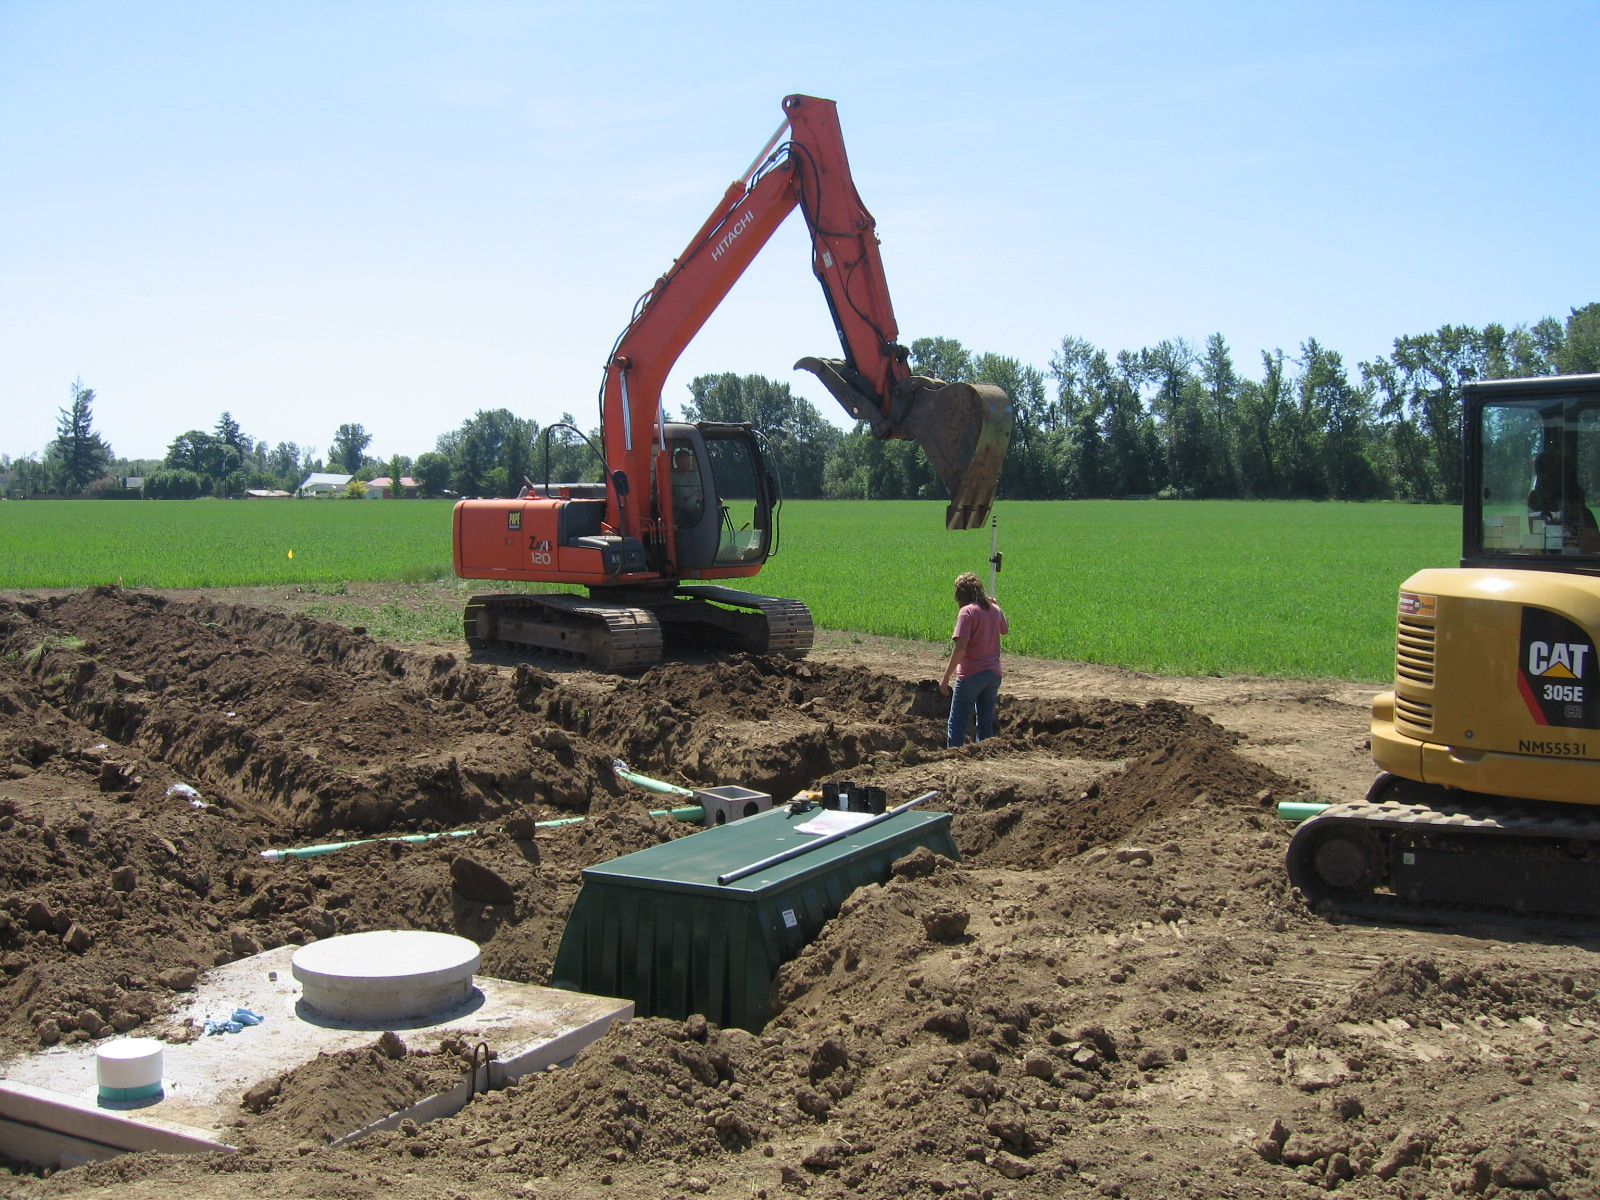 Back Yard Excavation : Backyard excavation tips to using the right tracks on